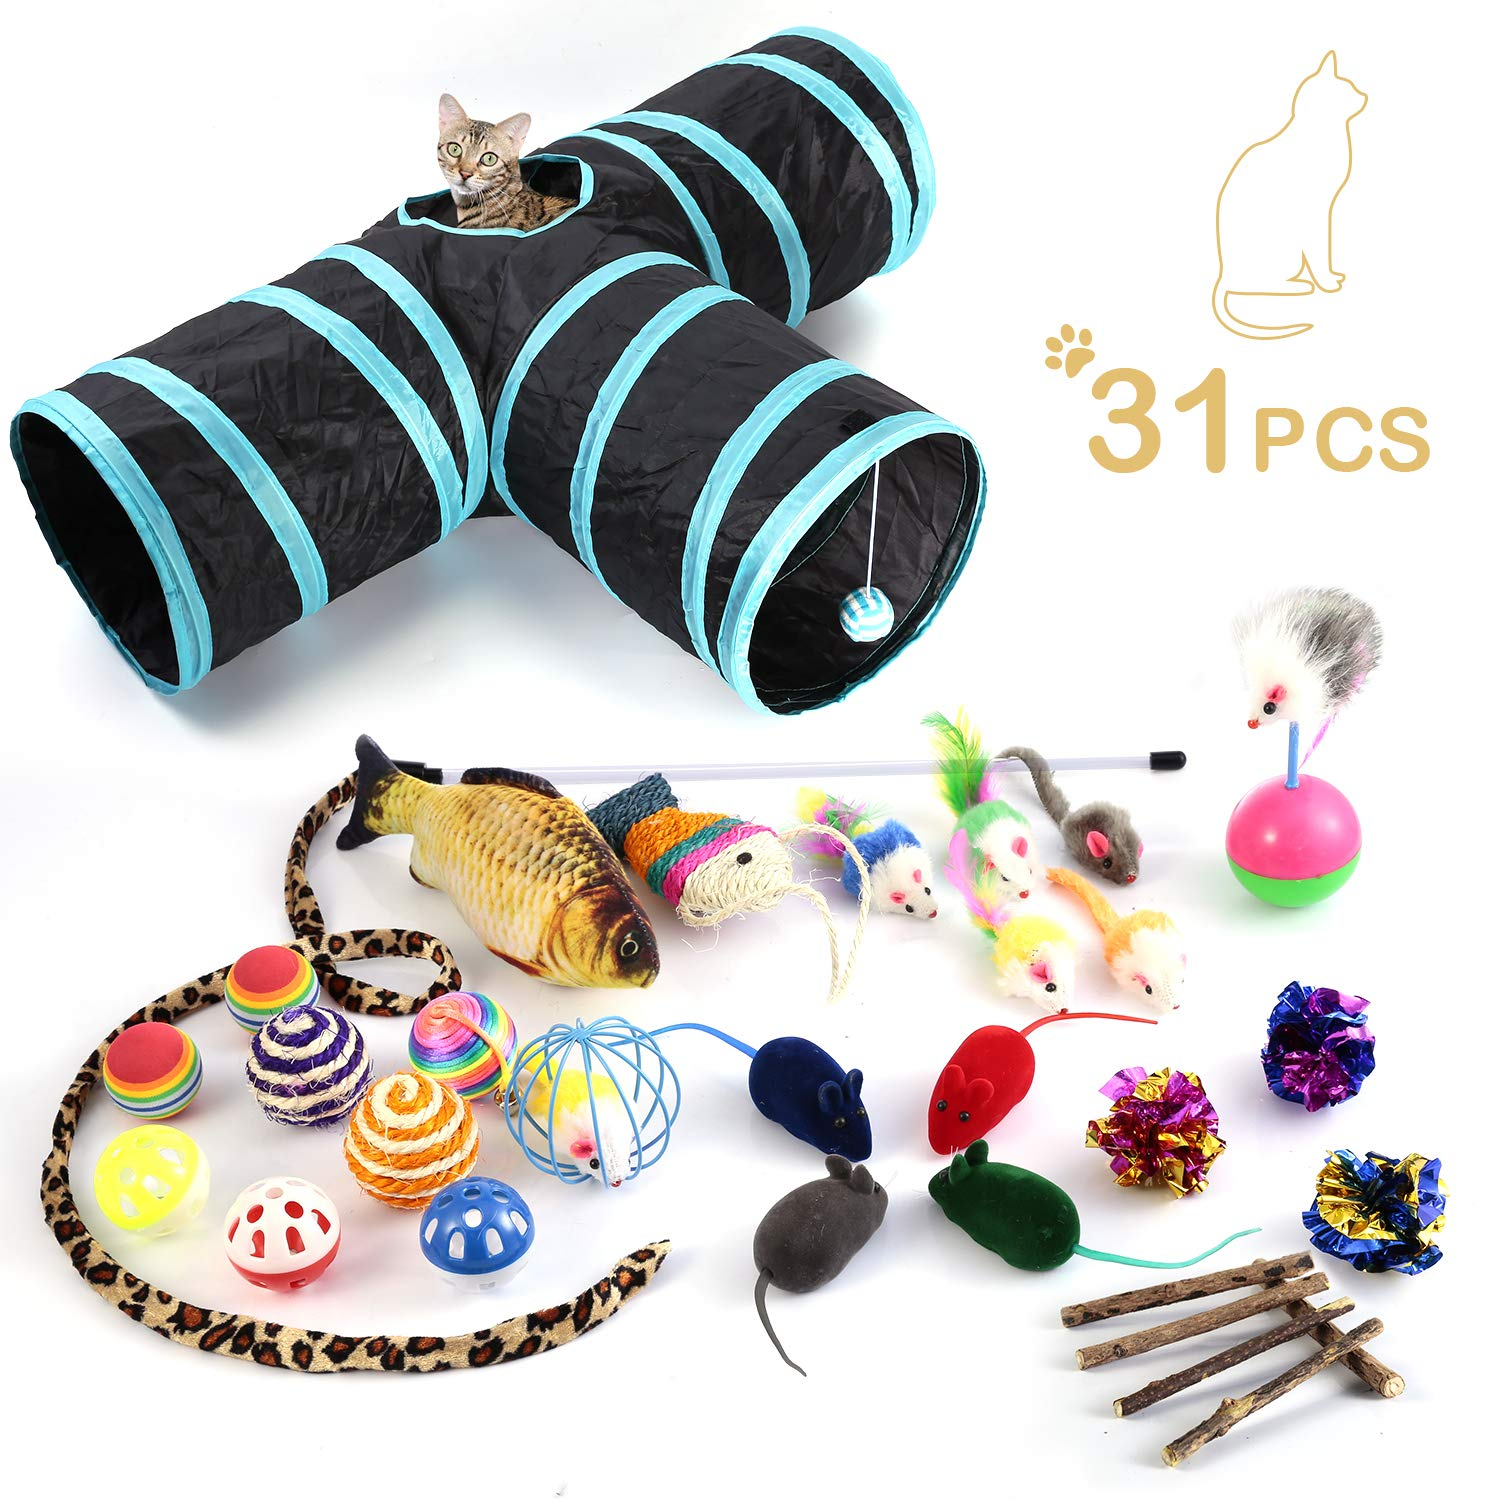 WERTYCITY Cat Toys Variety Pack, Including 3 Way Tunnel with Ball, Teaser Wand, Interactive Feather Toy, Fluffy Mouse, Crinkle Balls, Catnip Fish for Kitty, Puppy, Rabbit. Multicolor (25pcs) by WERTYCITY